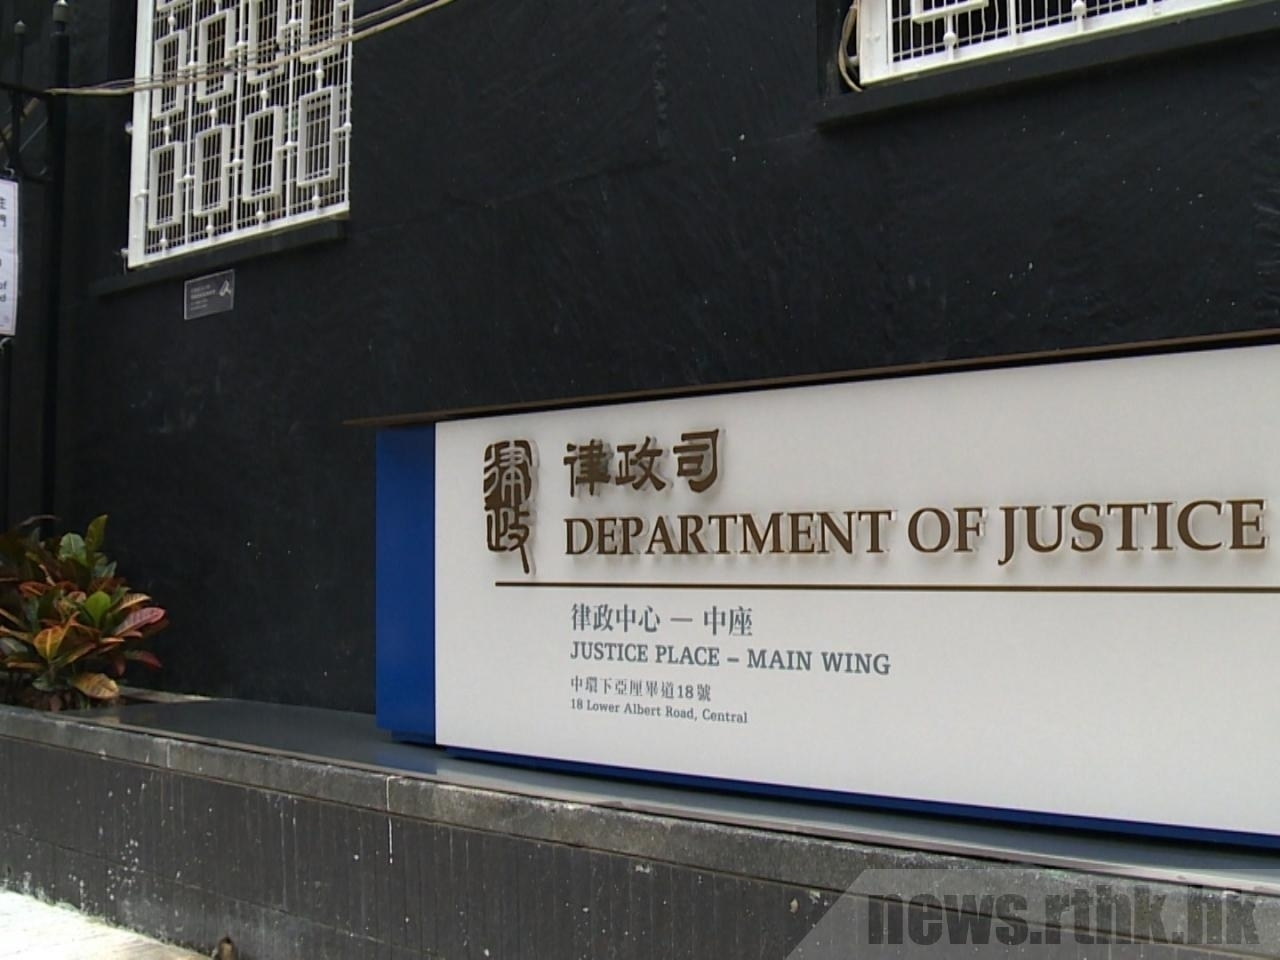 The Department of Justice said there had been 'bare assertions' that the fundamental rights and freedoms in Hong Kong have been undermined. File photo: RTHK